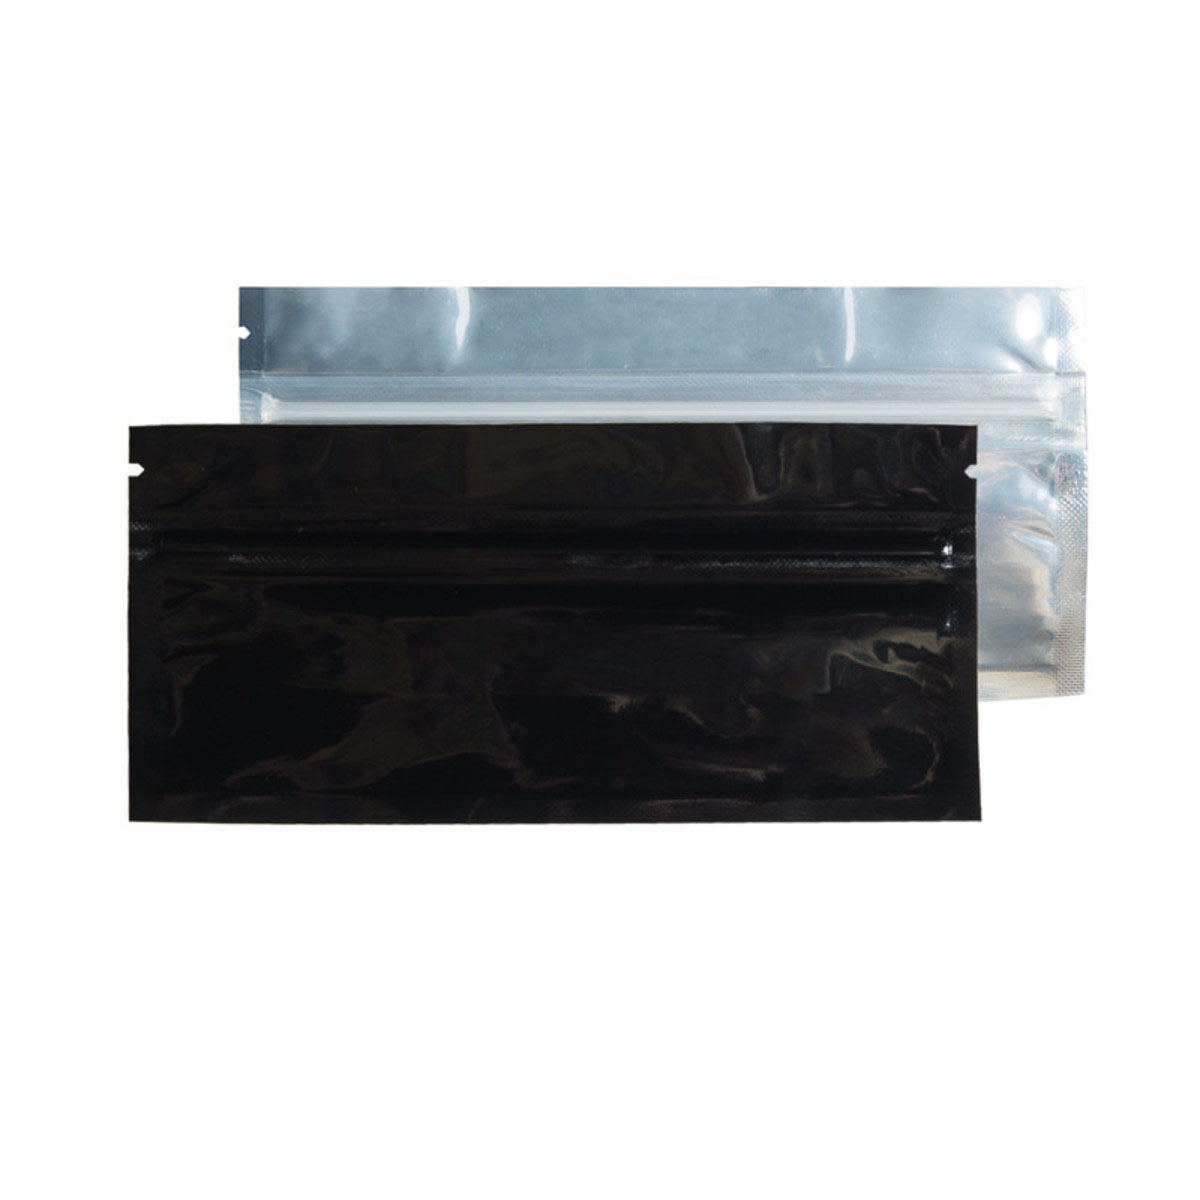 Pre-roll Black/Clear Barrier Bags (100 Qty.)